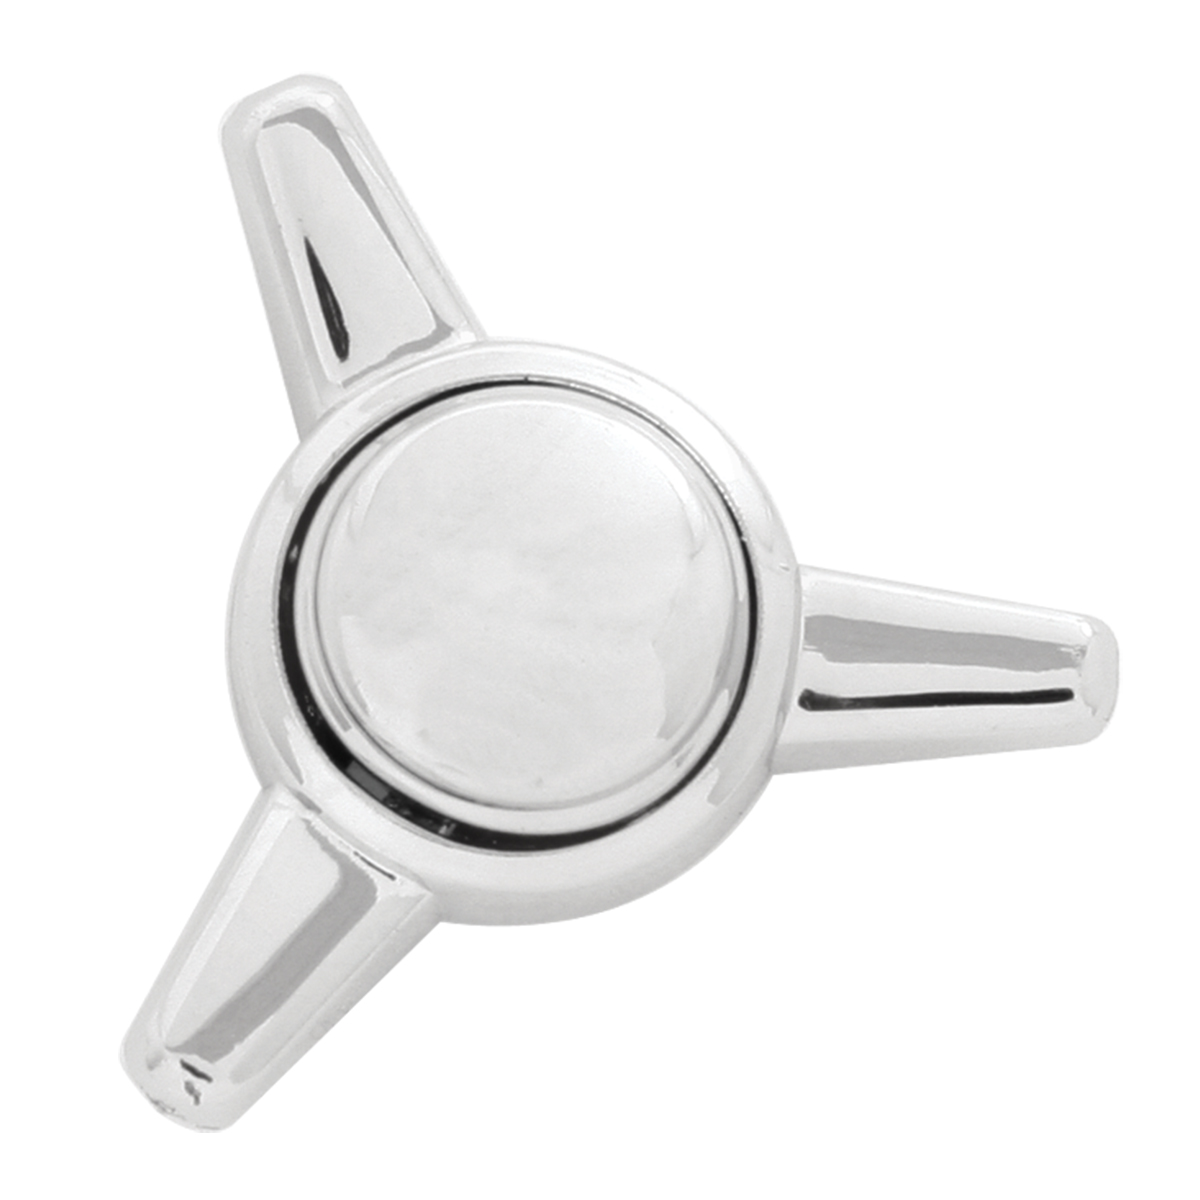 Chrome Plated Screw Head Covers in Spinner Snap-On Style